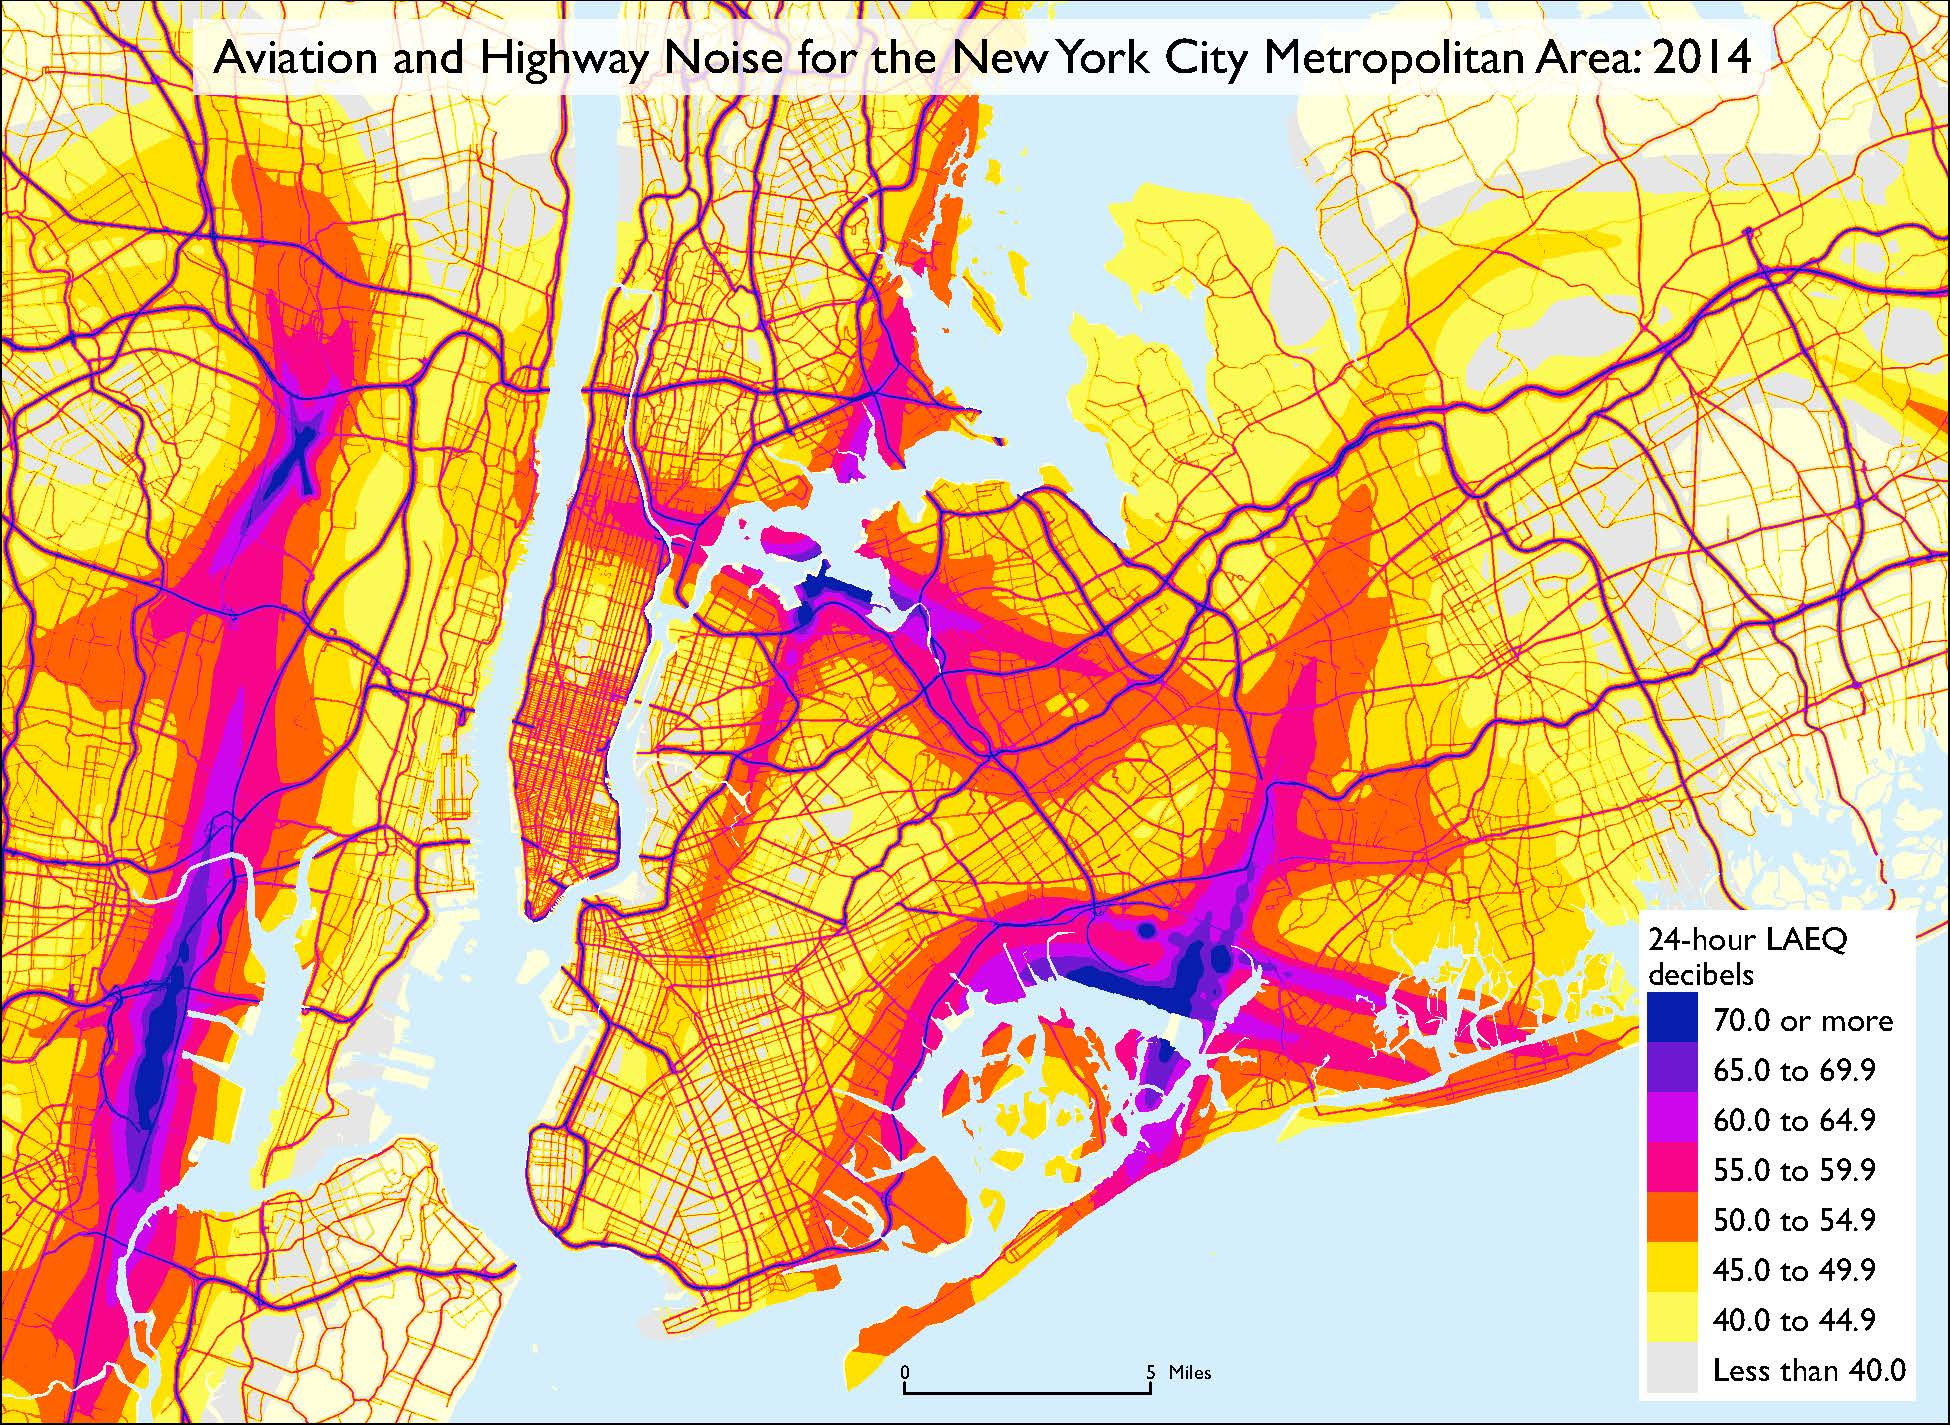 Aviation and Highway Noise for the New York City Metropolitan Area: 2014